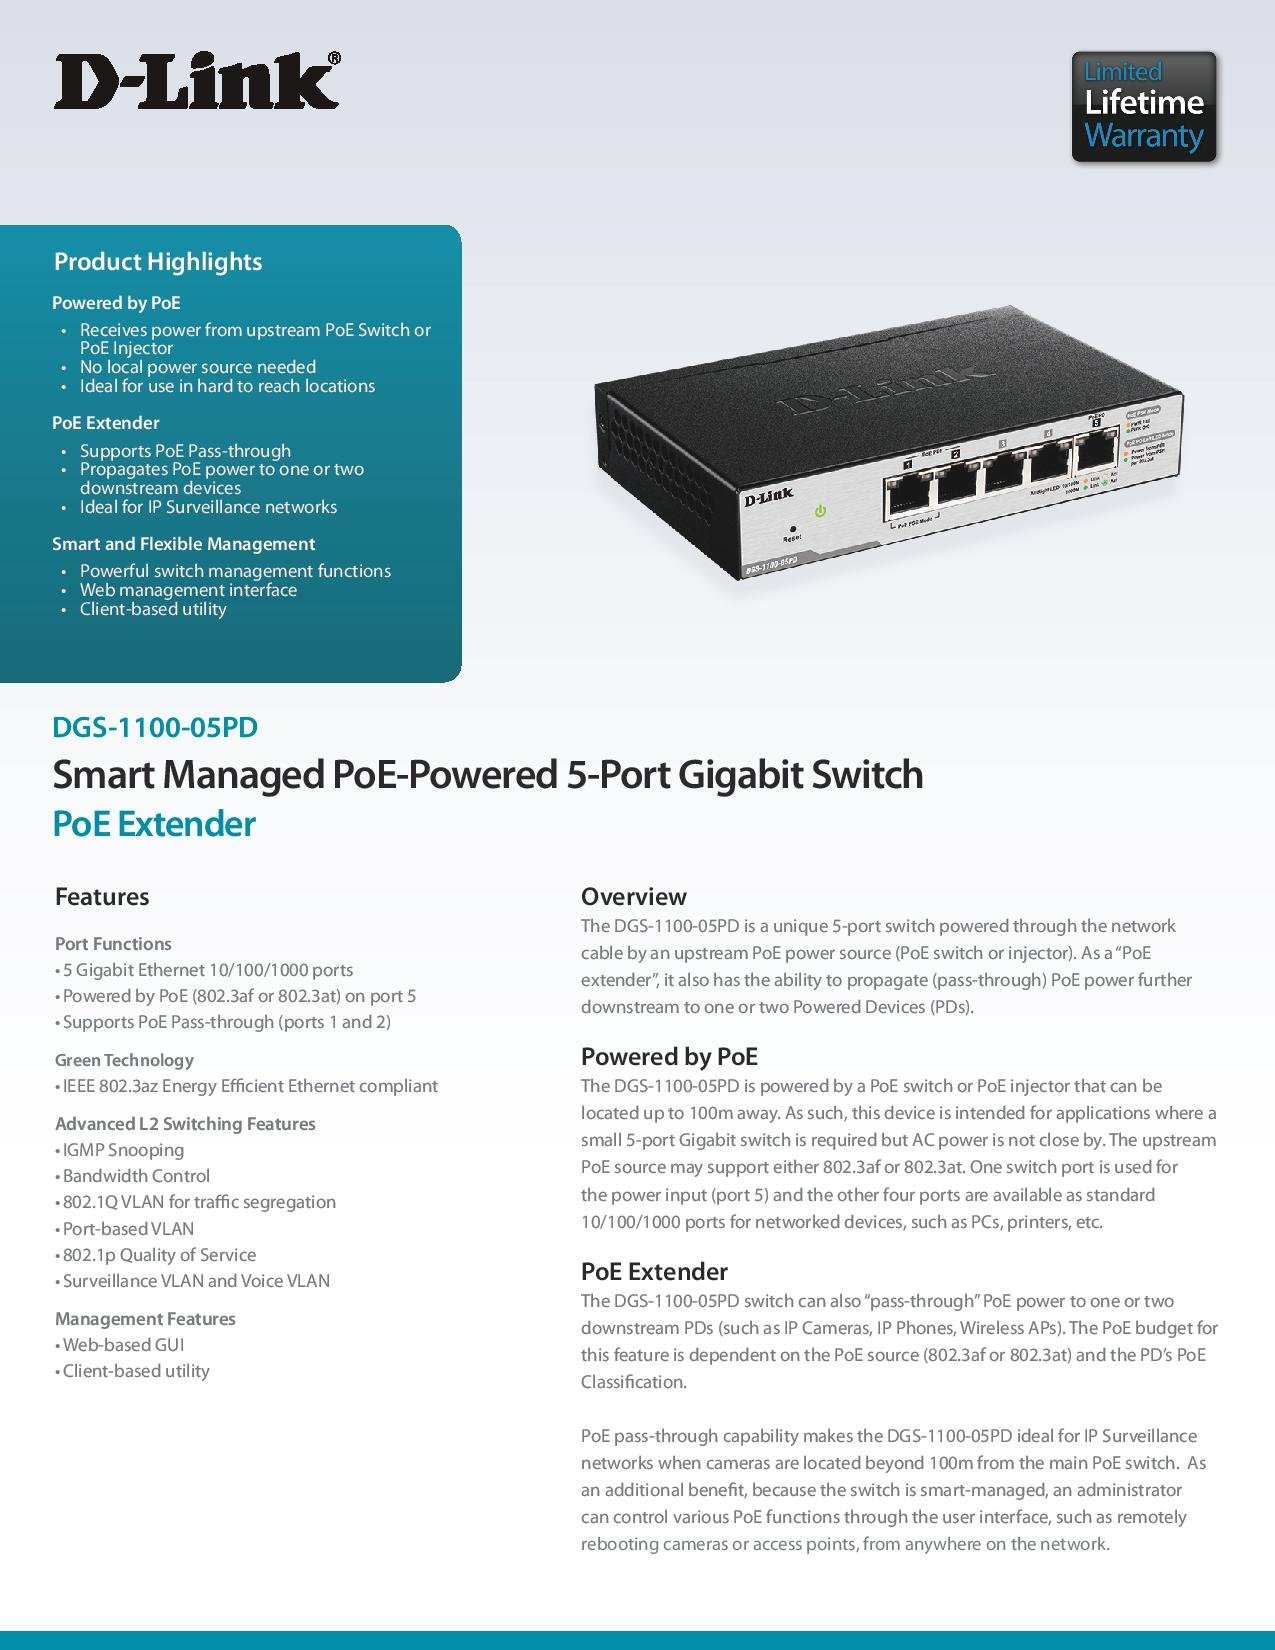 D-Link DGS-1100-05PD Smart Managed PoE-Powered 5-Port Gigabit Switch and PoE Extender by D-Link (Image #5)